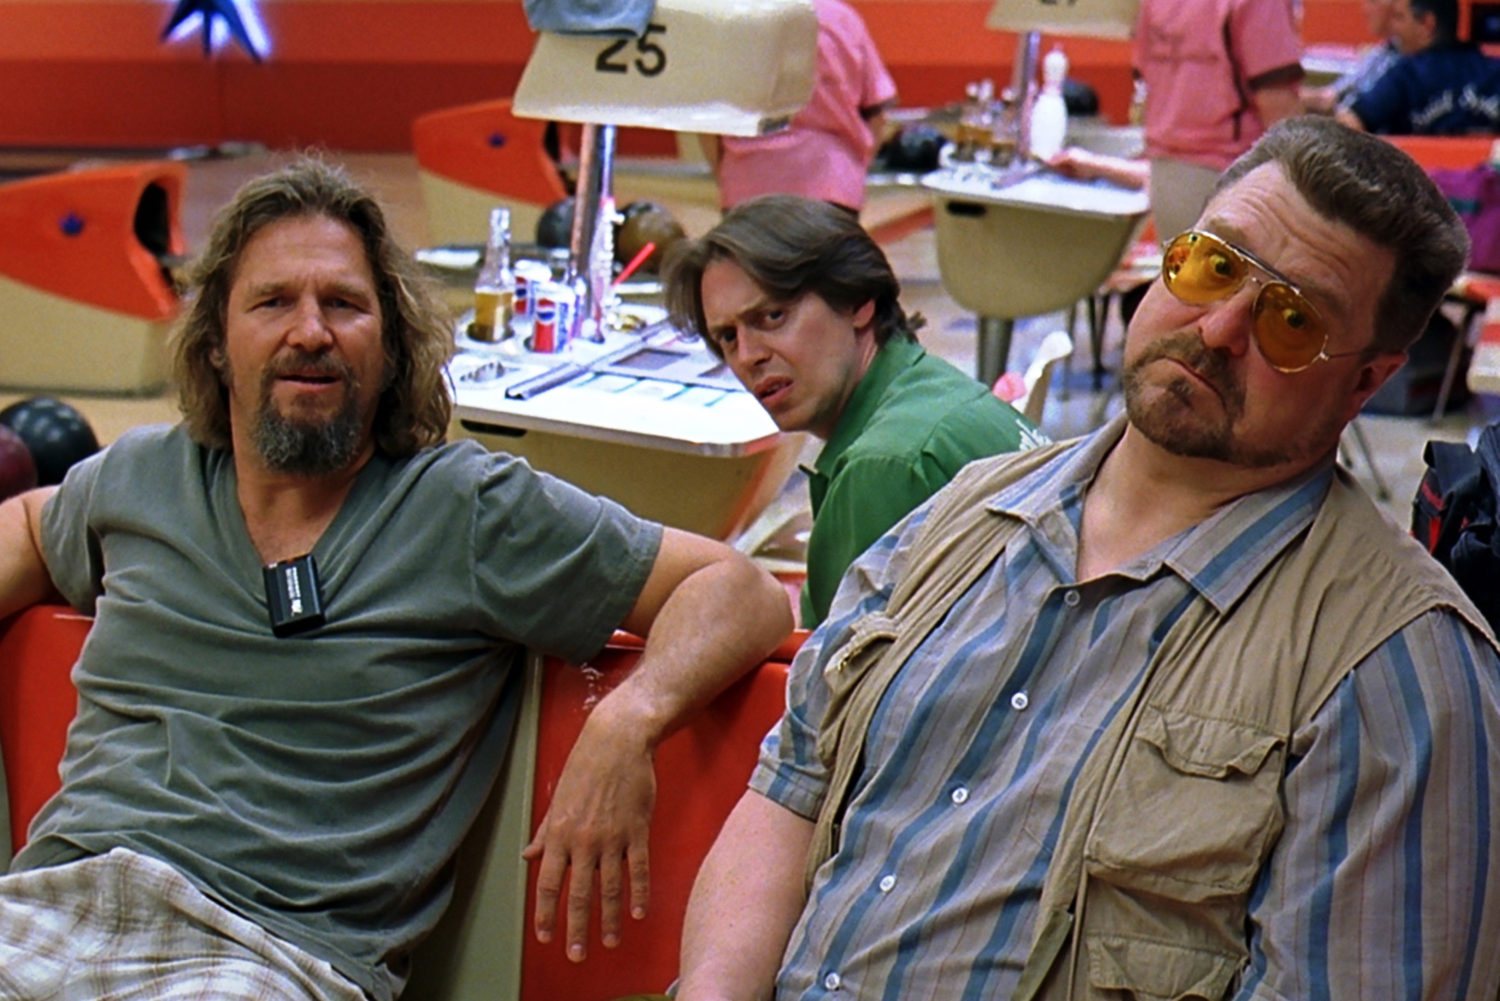 LUUK VS LUUK: THE BIG LEBOWSKI